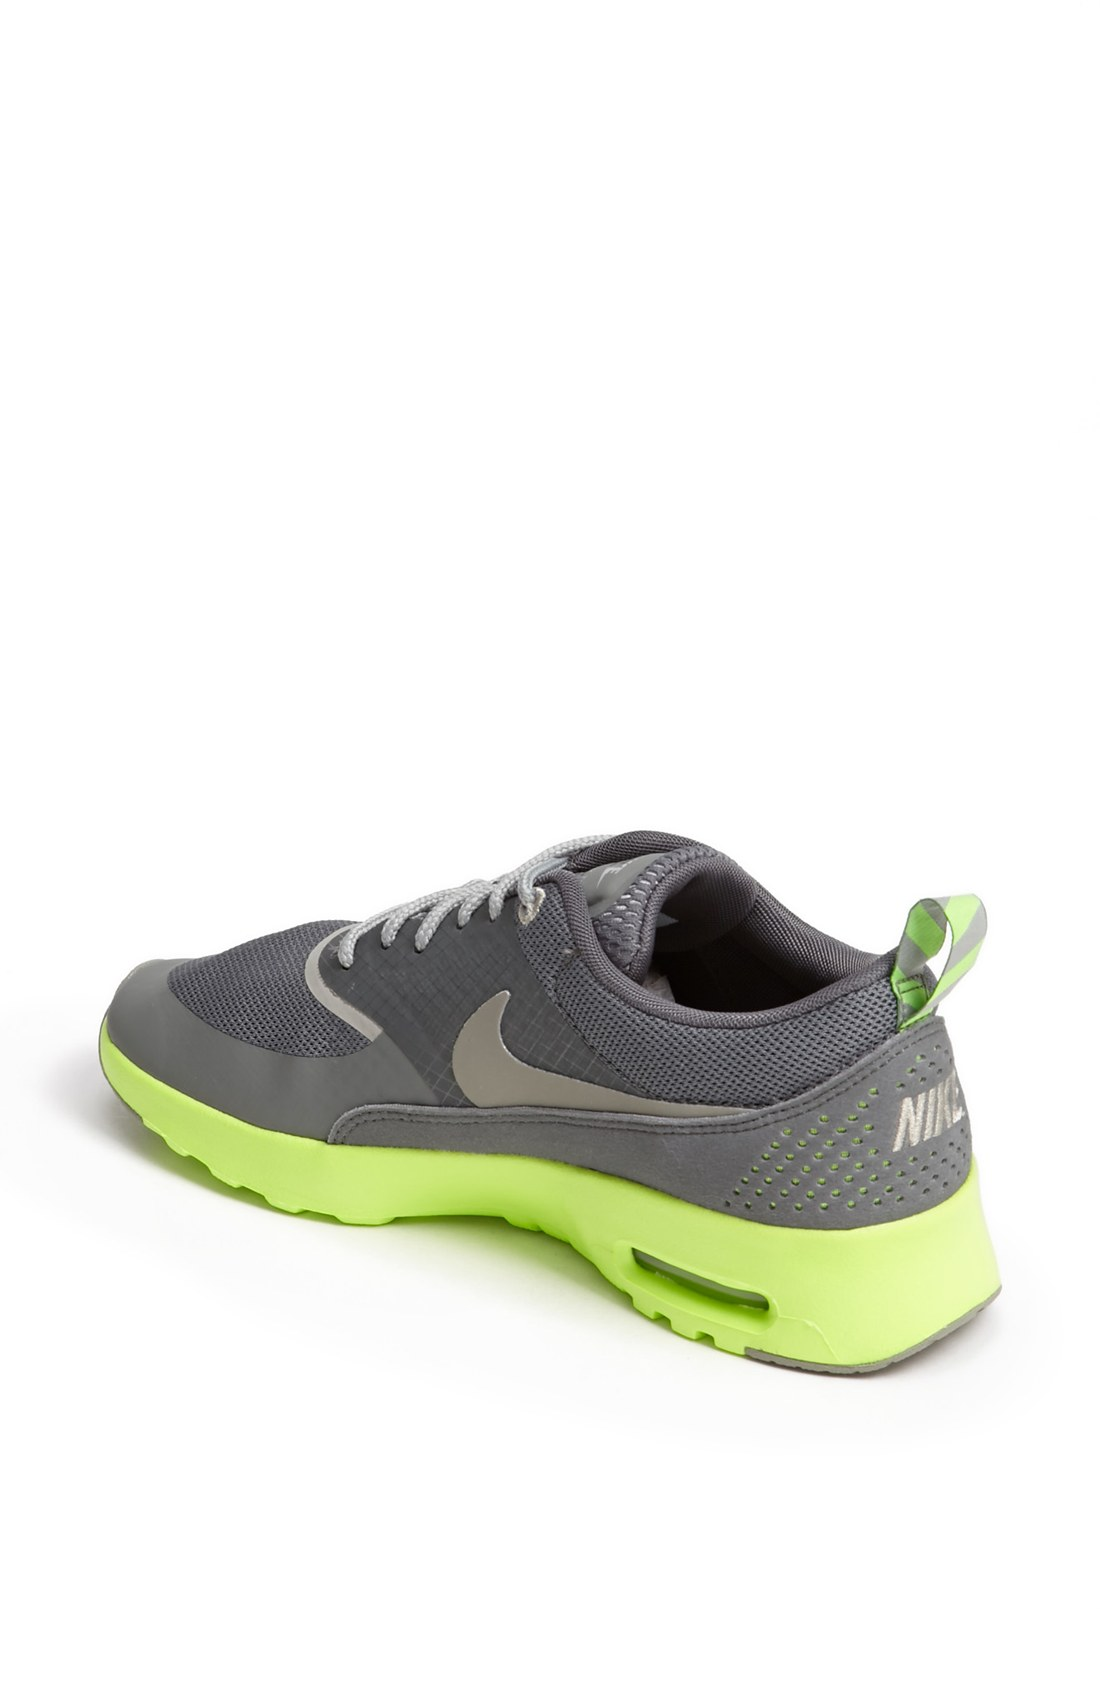 Nike Air Max Thea Sneaker in Yellow (Mercury Grey/ Flash Lime) | Lyst